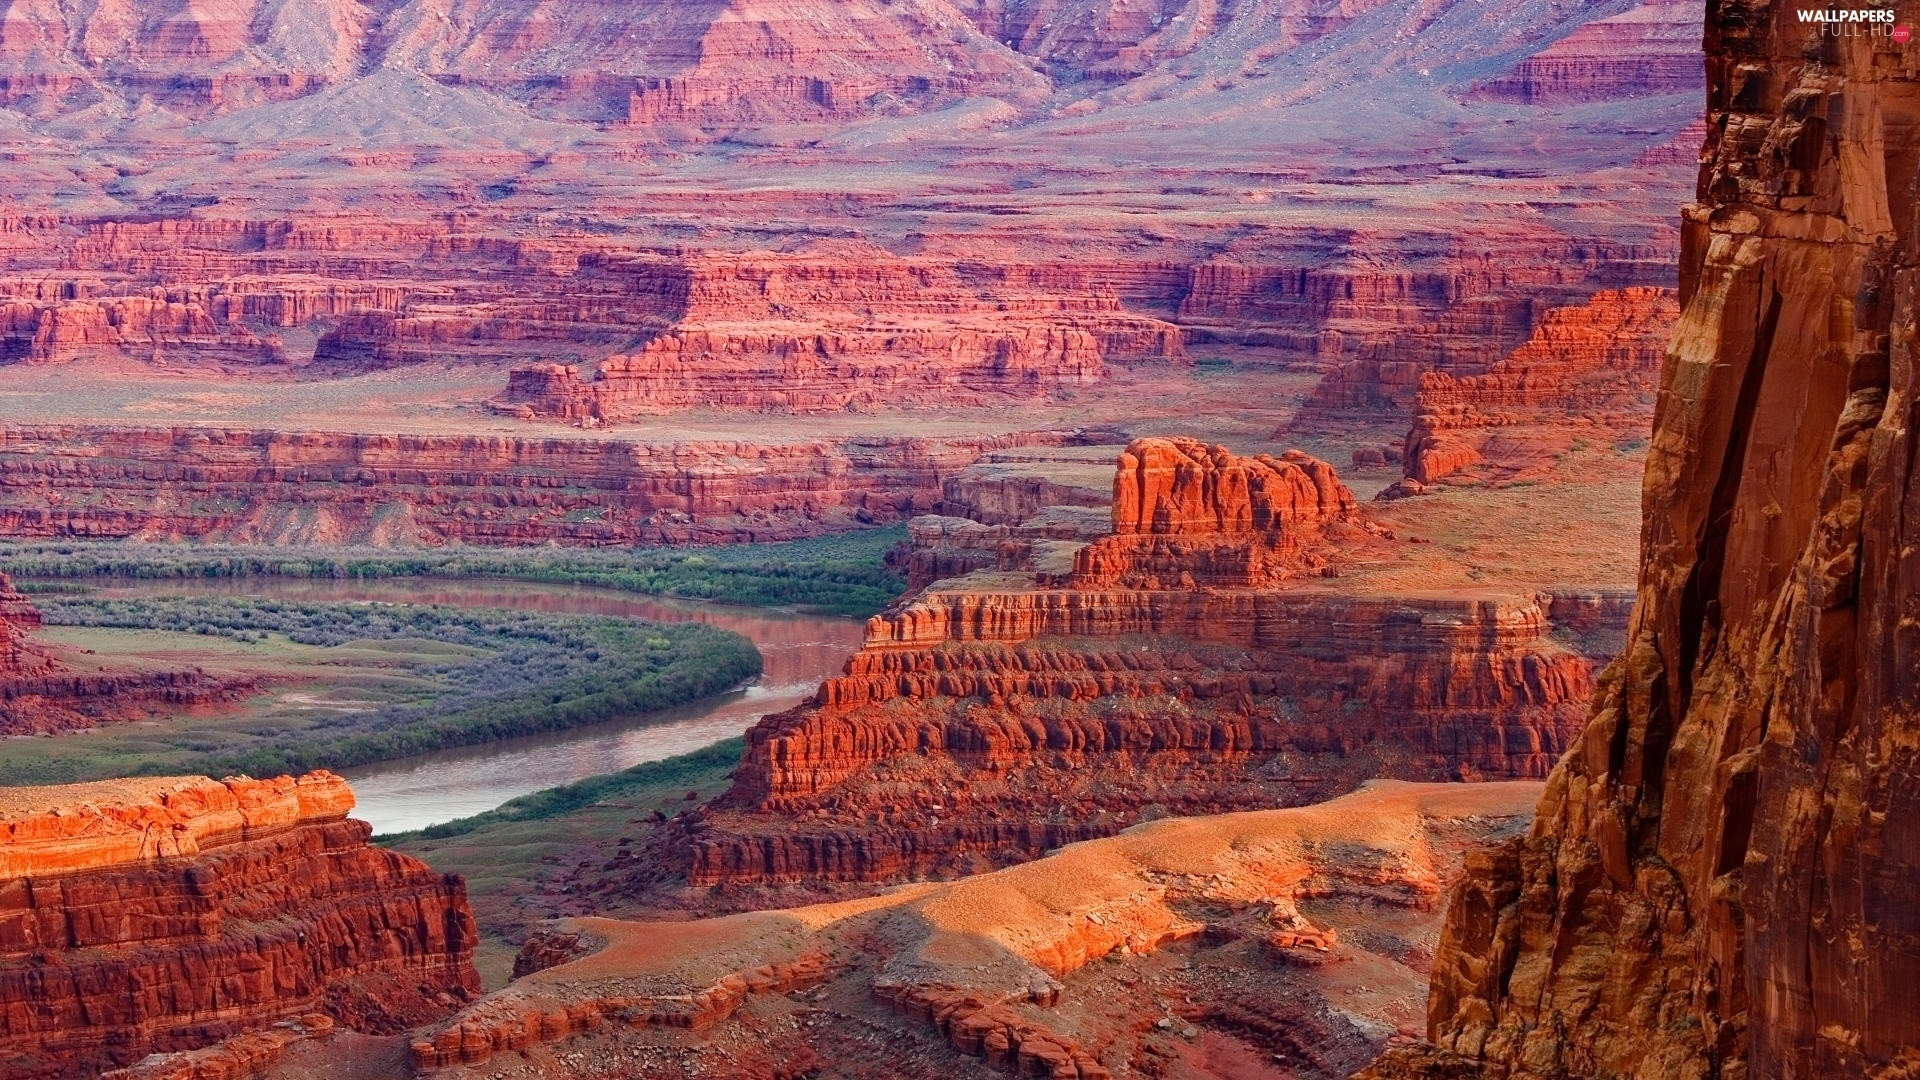 River, canyons